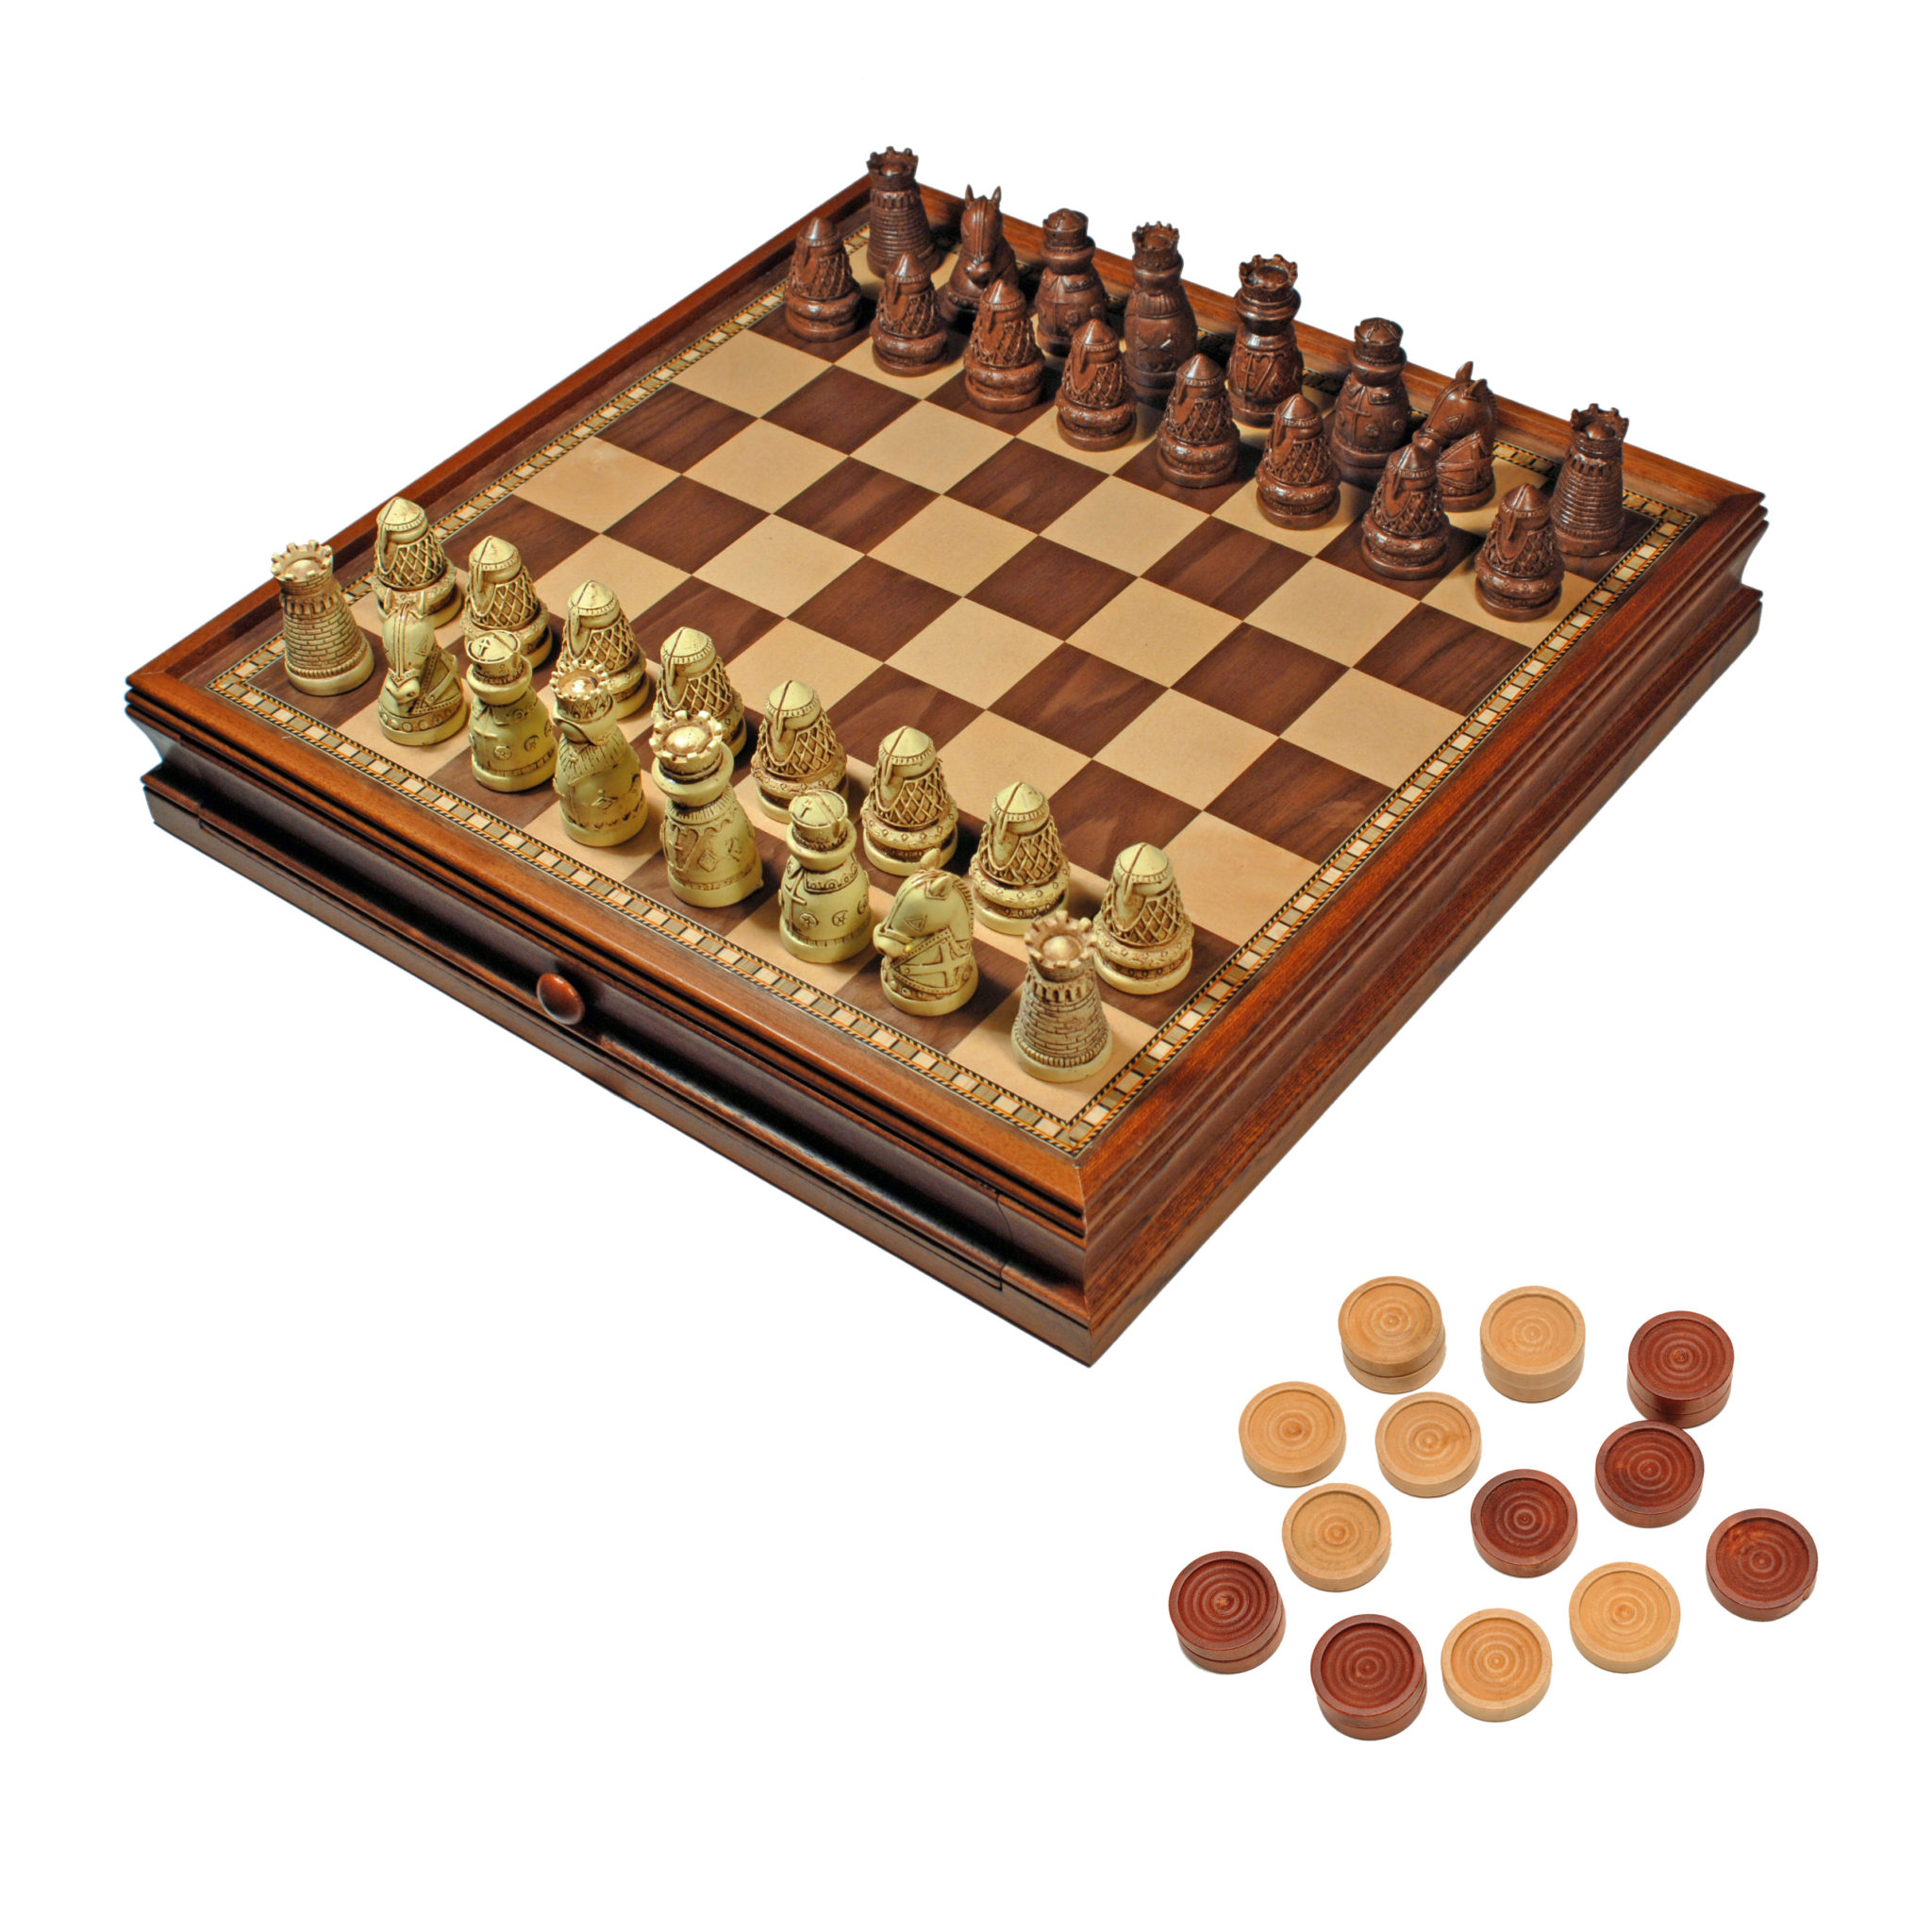 Chess Boards For Sale Amazon Medieval Chess And Checkers Game Set Brown And Ivory